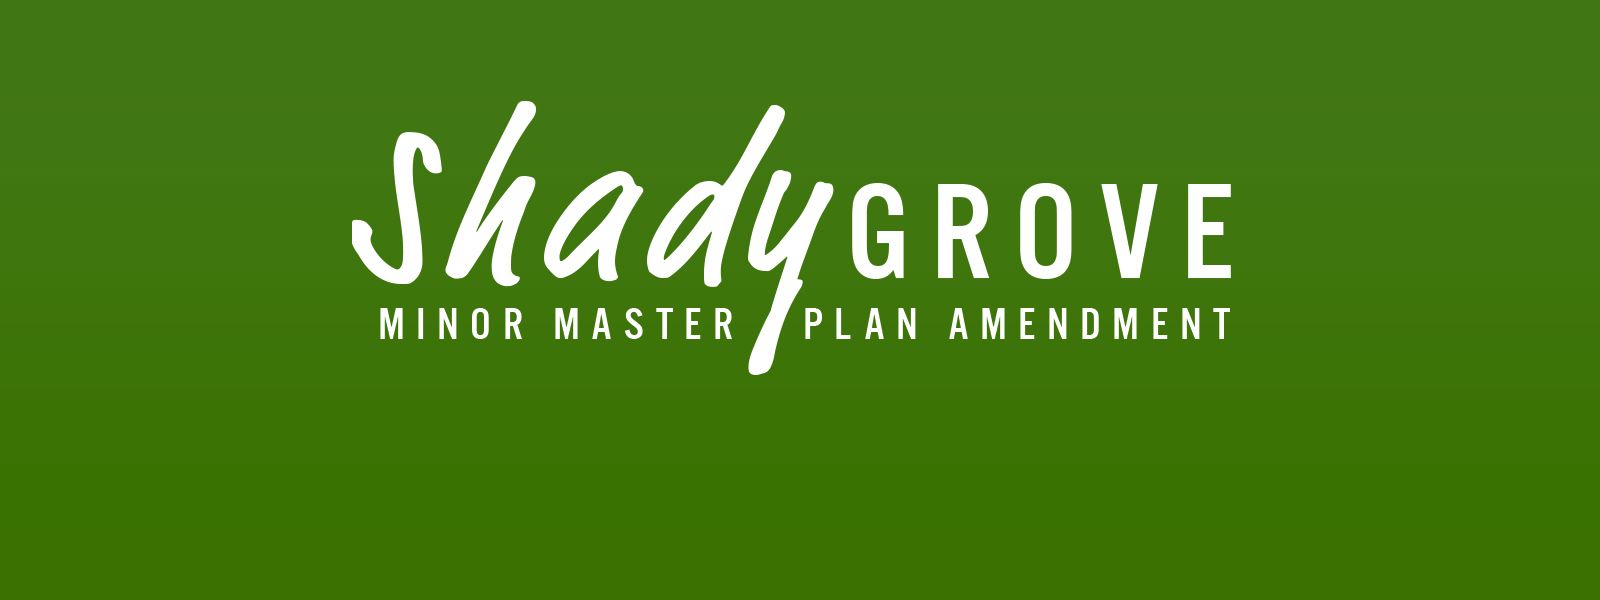 Shady Grove Minor Master Plan Amendment Scope of Work